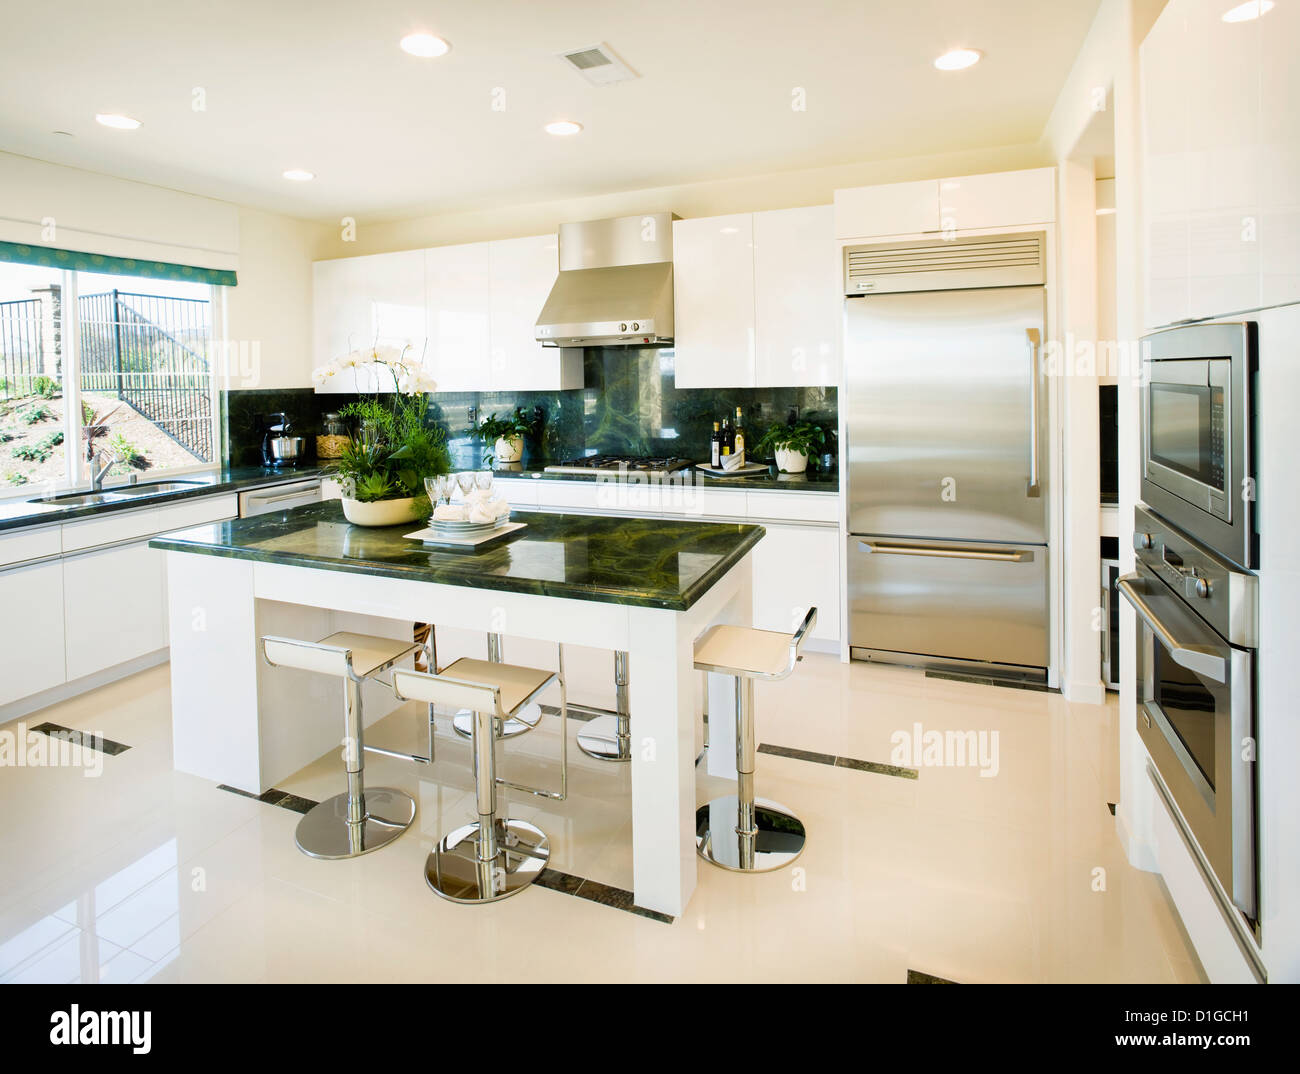 New House Ugly Kitchen Any Cost Effective Ideas For Sprucing It Up A Bit Designmyroom